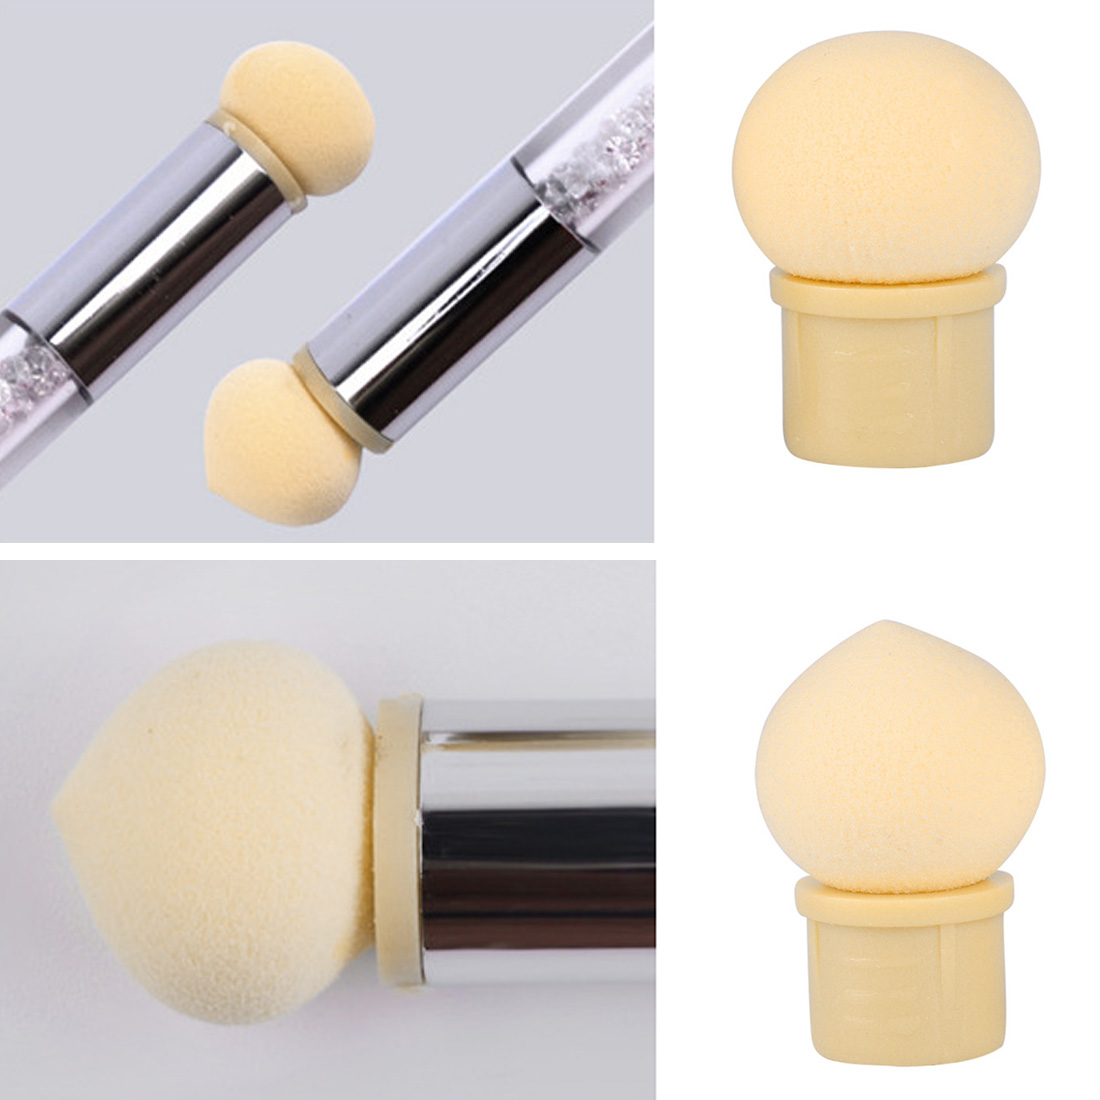 Reusable Double Gradient Printing UV Gel Manicure Smudge Pen Non-latex Sponge Head Replaceable Powder Accessories